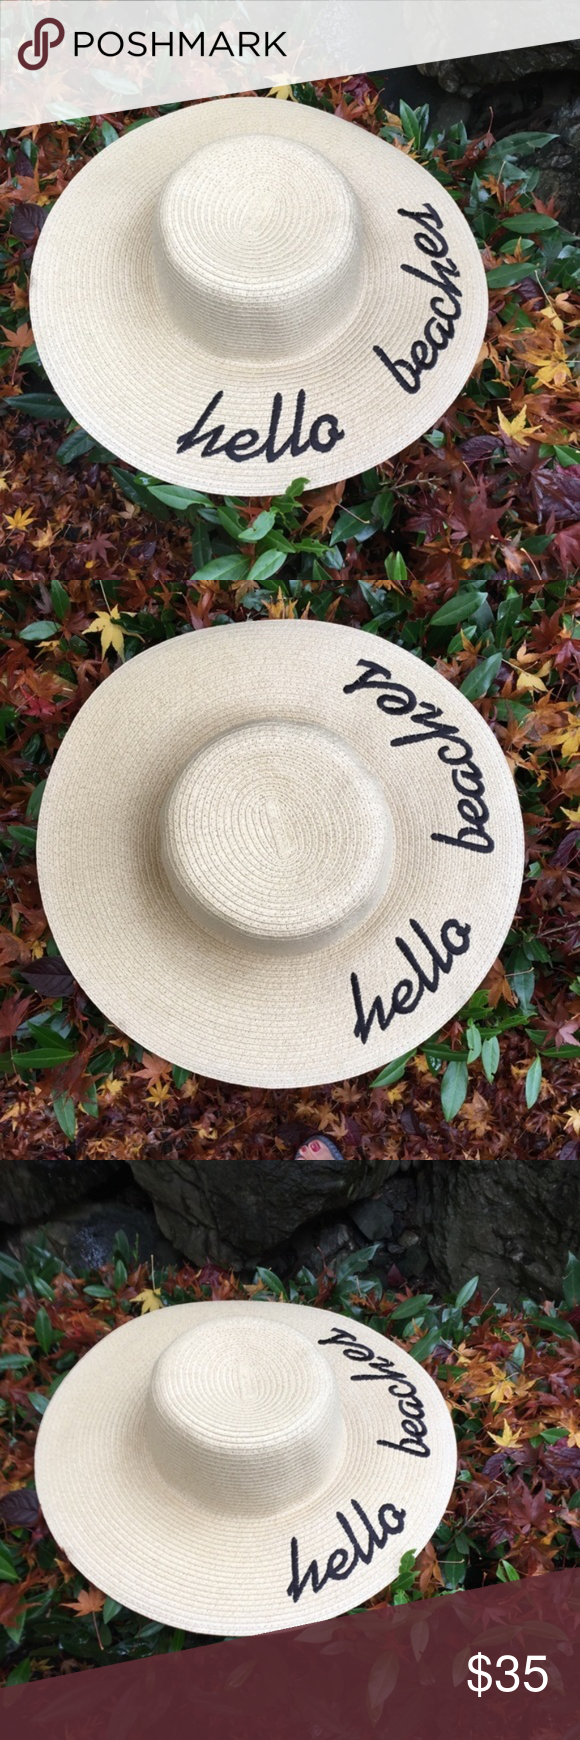 BEACH HAT SOCIAL MEDIA Great hat for social media pictures. One size fits  all. 62e6de14fa3